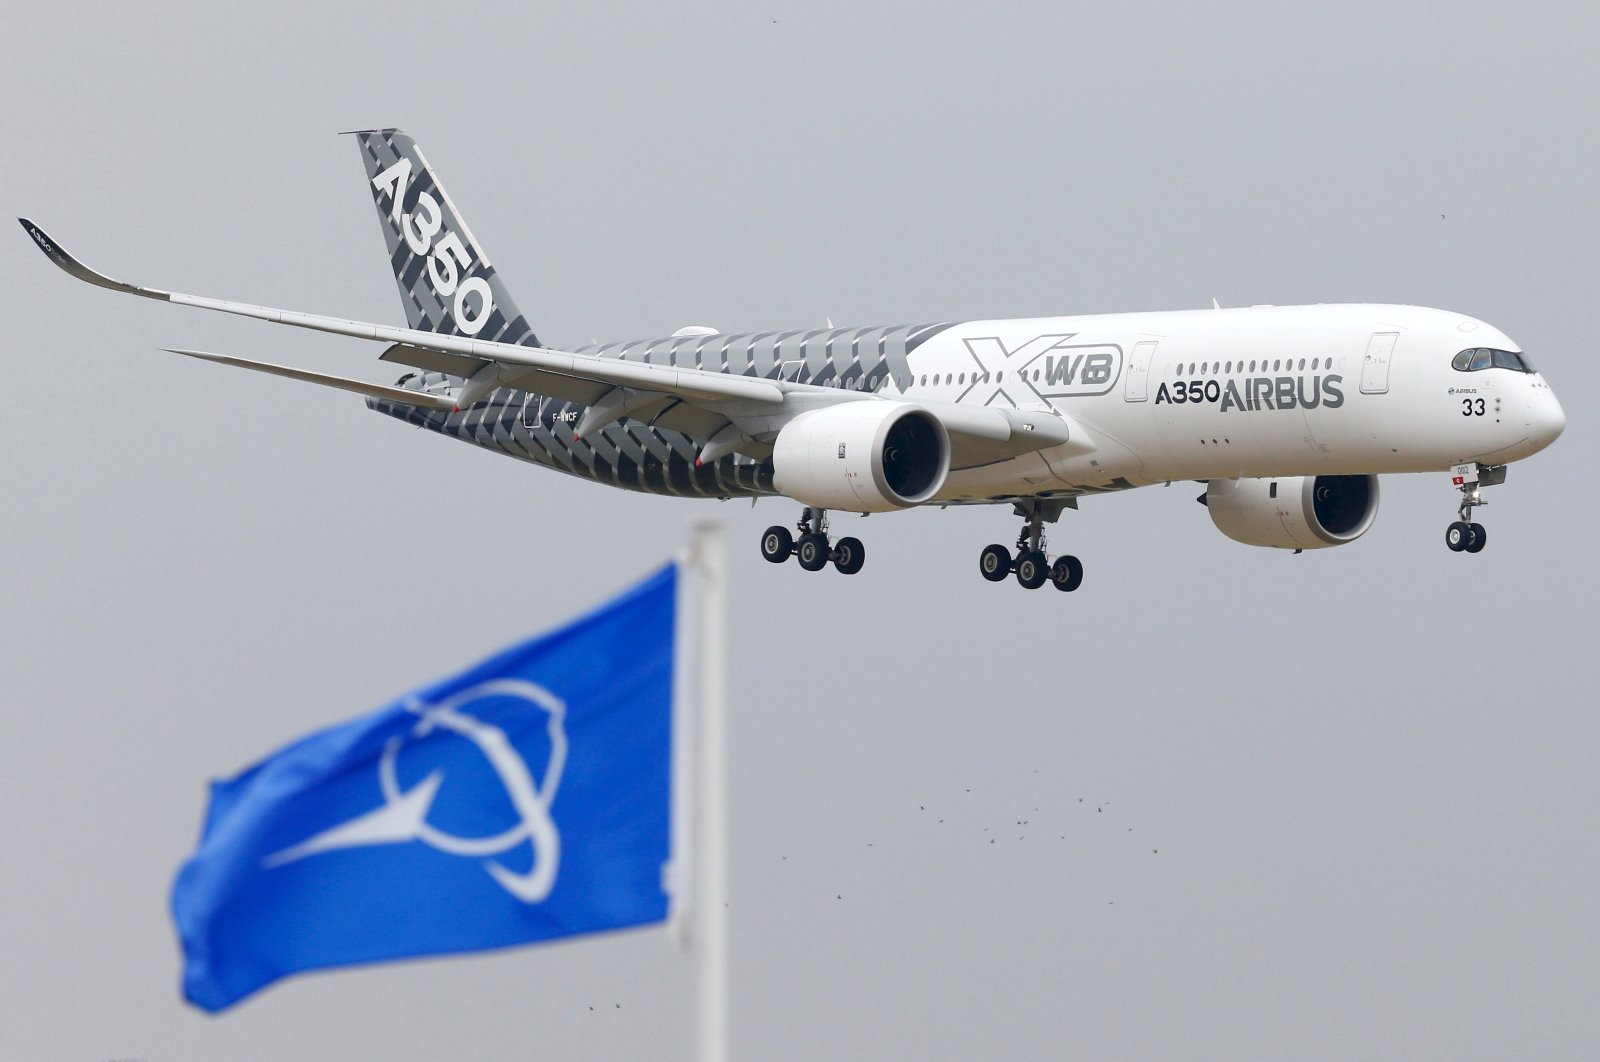 An Airbus A350 jetliner flies over Boeing flags as it lands after a flying display during the 51st Paris Air Show at Le Bourget airport near Paris, France, June 15, 2015. (Reuters Photo)